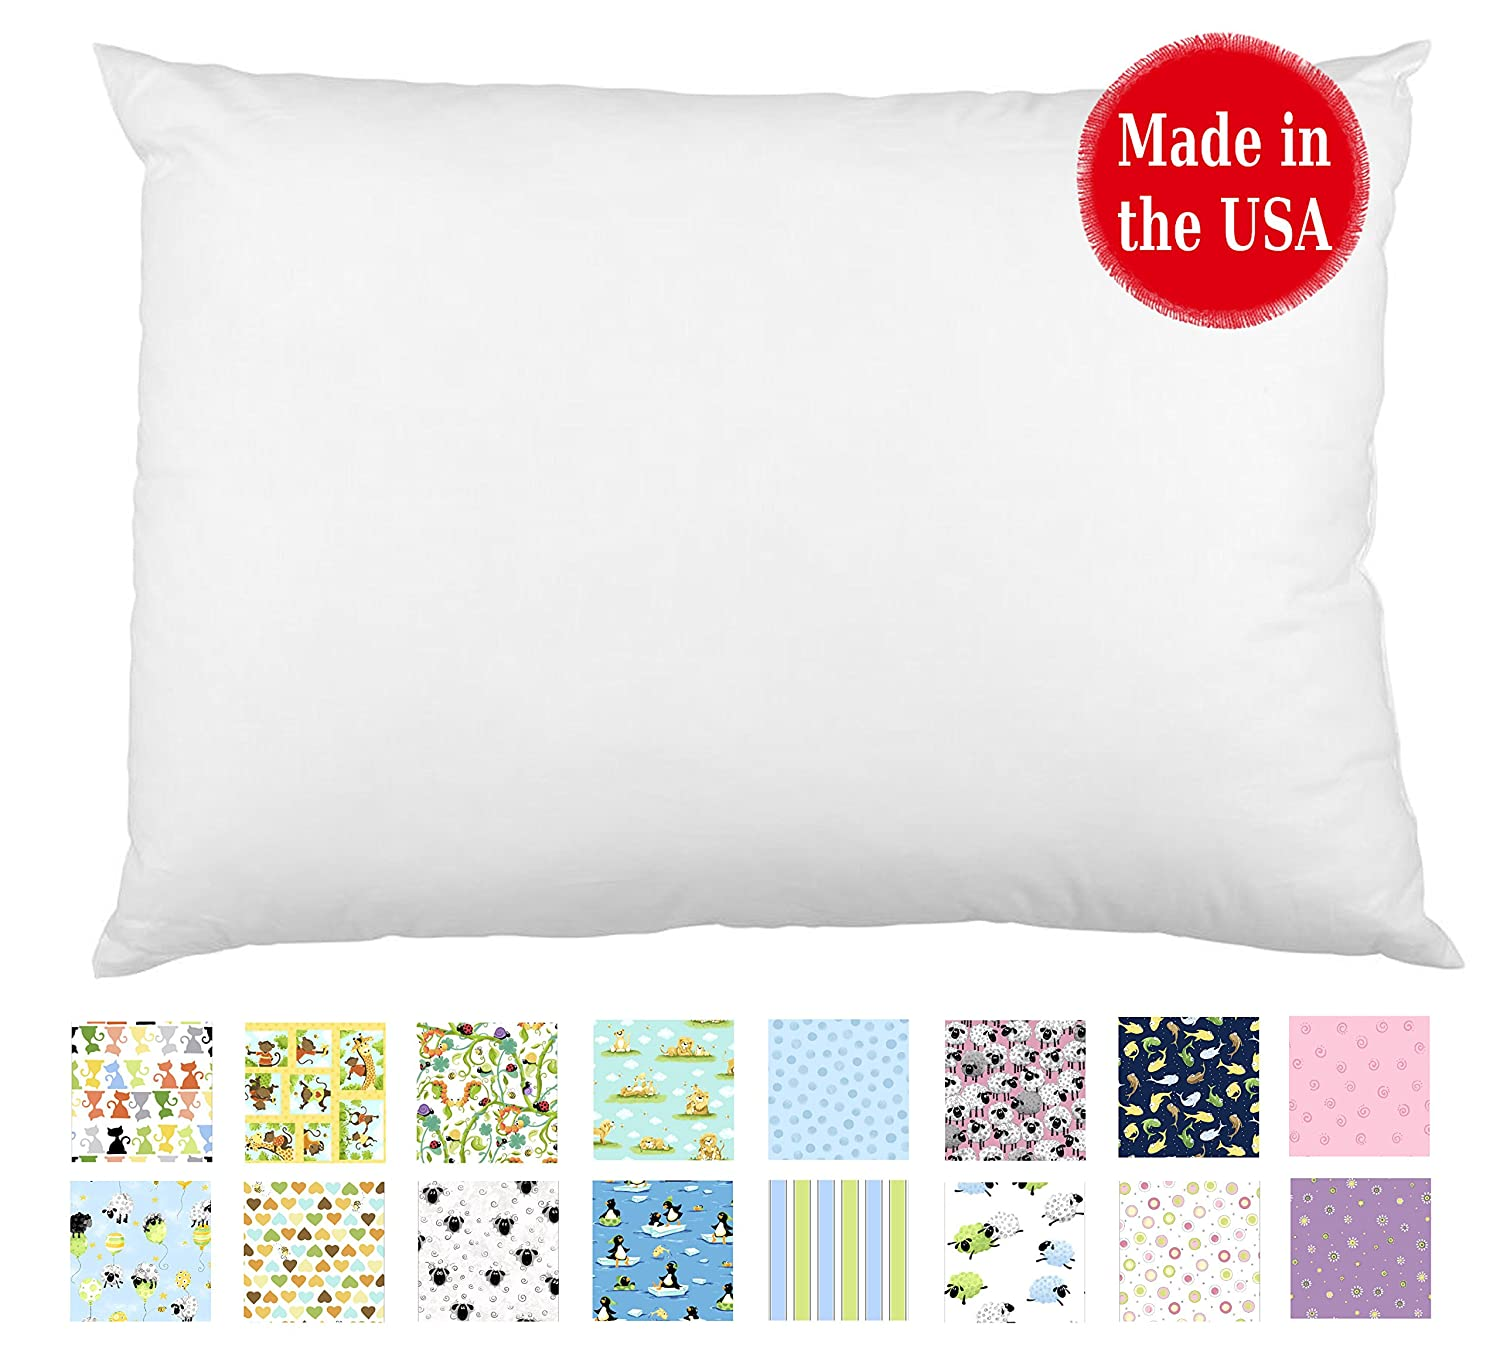 Toddler Pillow In White & Prints